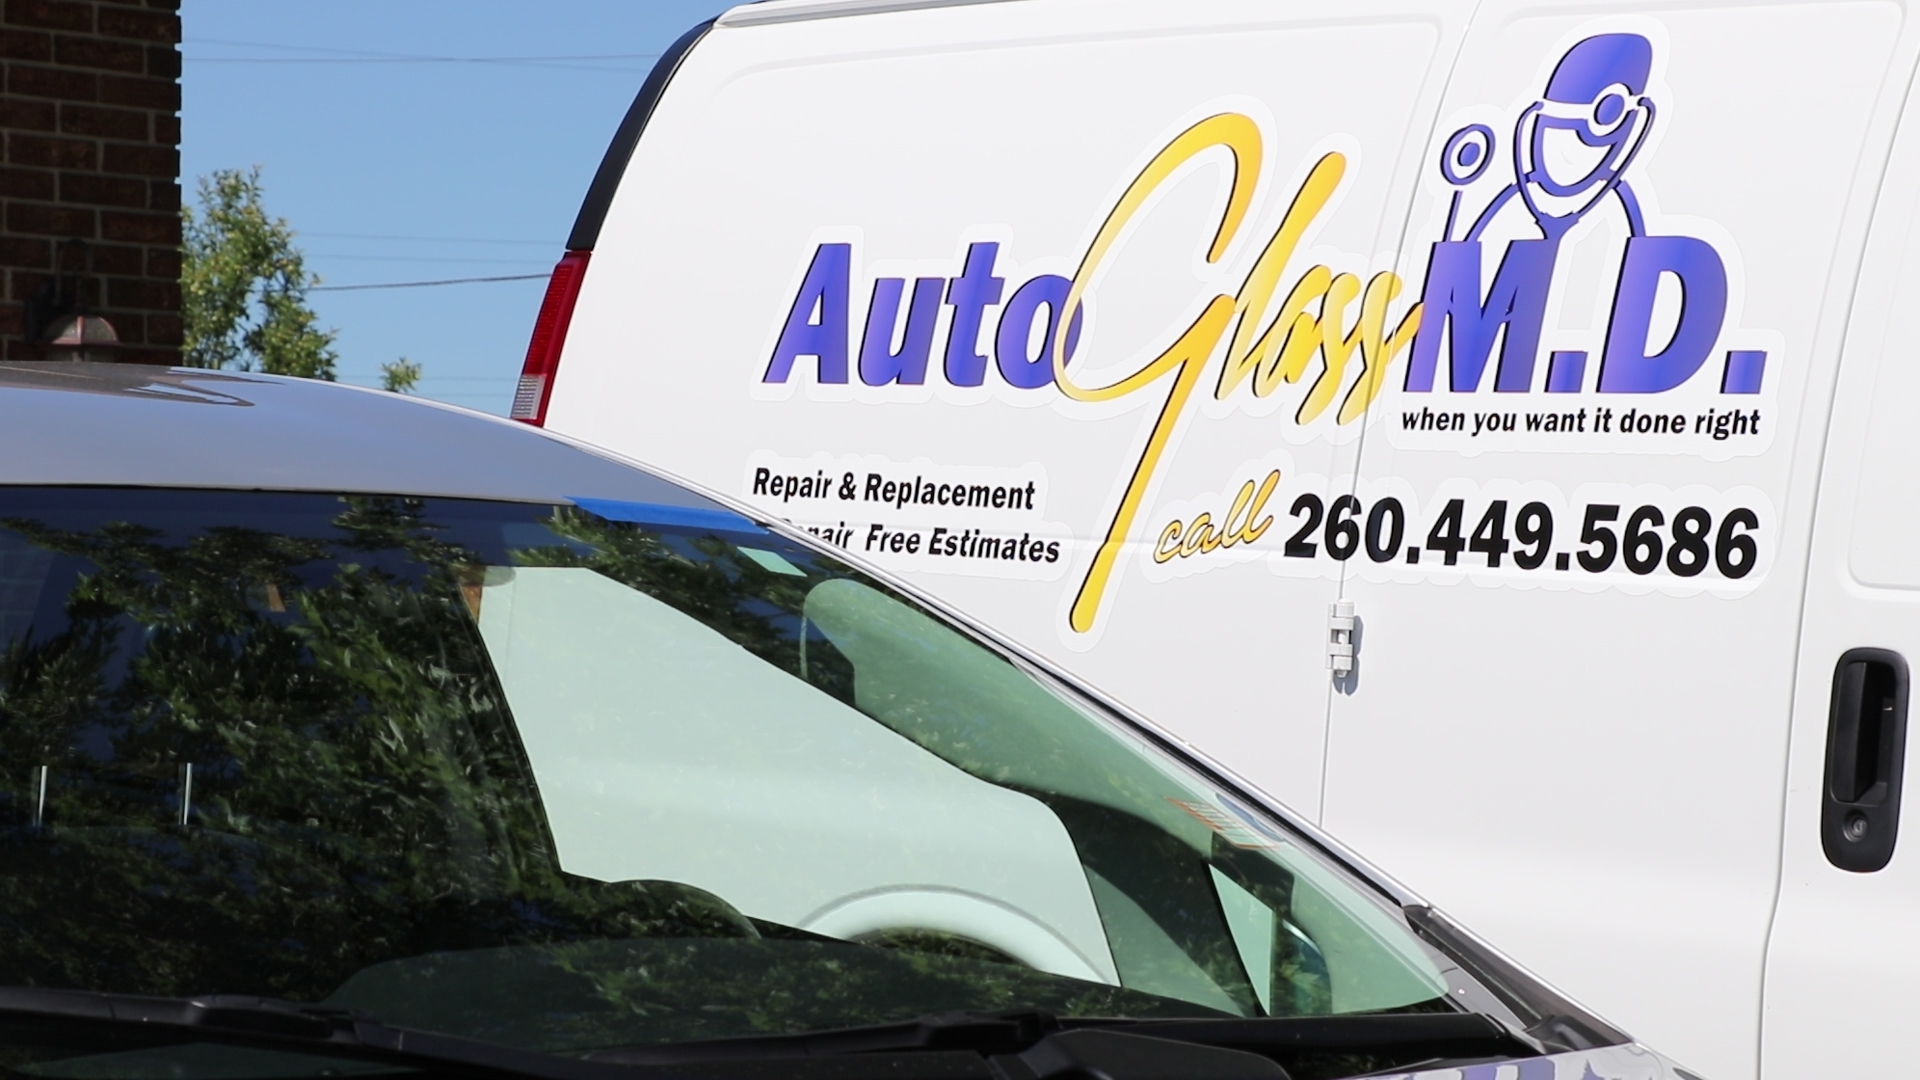 Auto Glass Quote Auto Glass Repair In Fort Wayne Indiana  Auto Glass M.d.